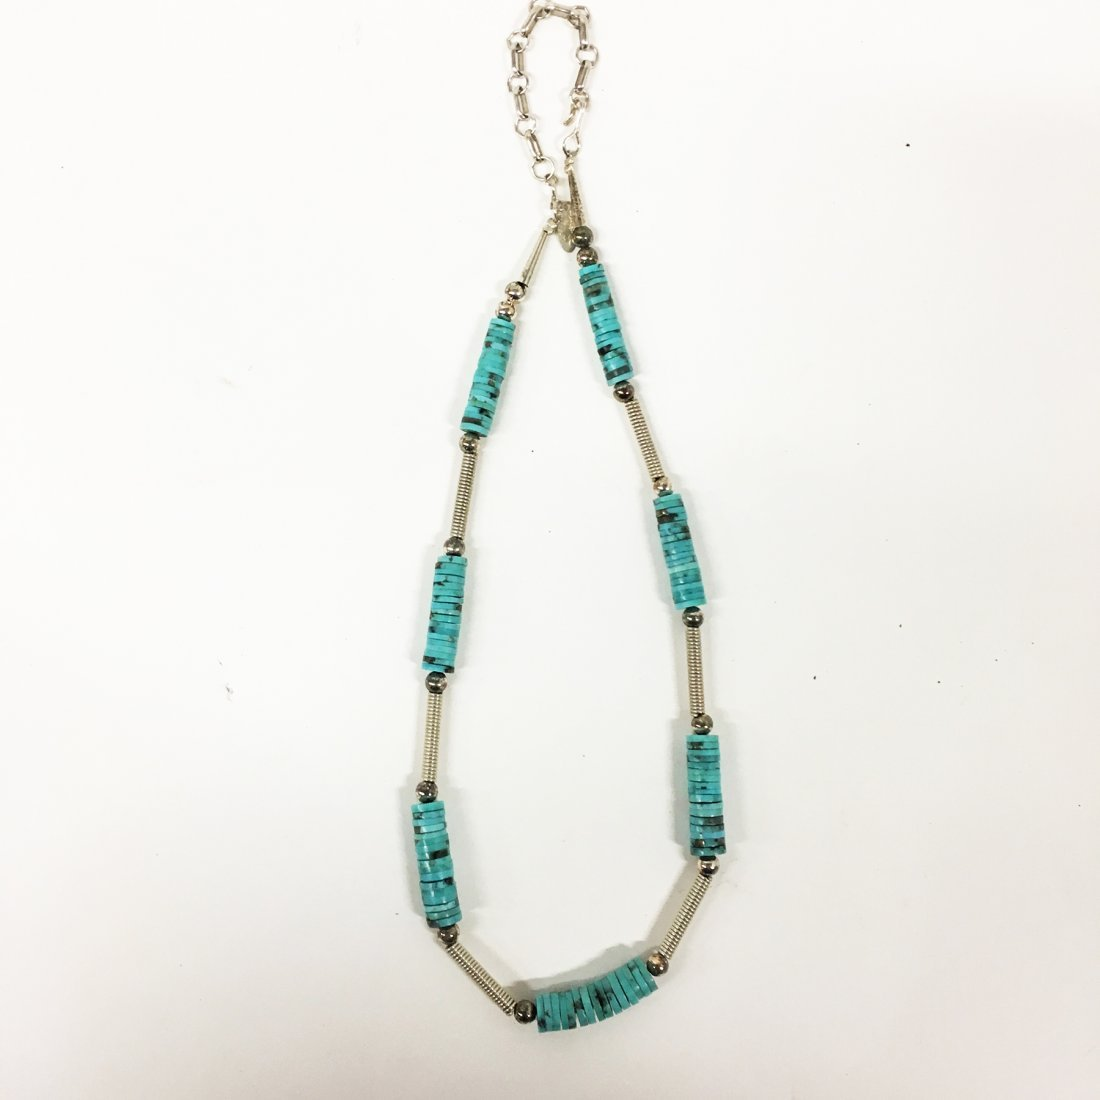 Turquoise and Sterling necklaces with gemstone accents - 5